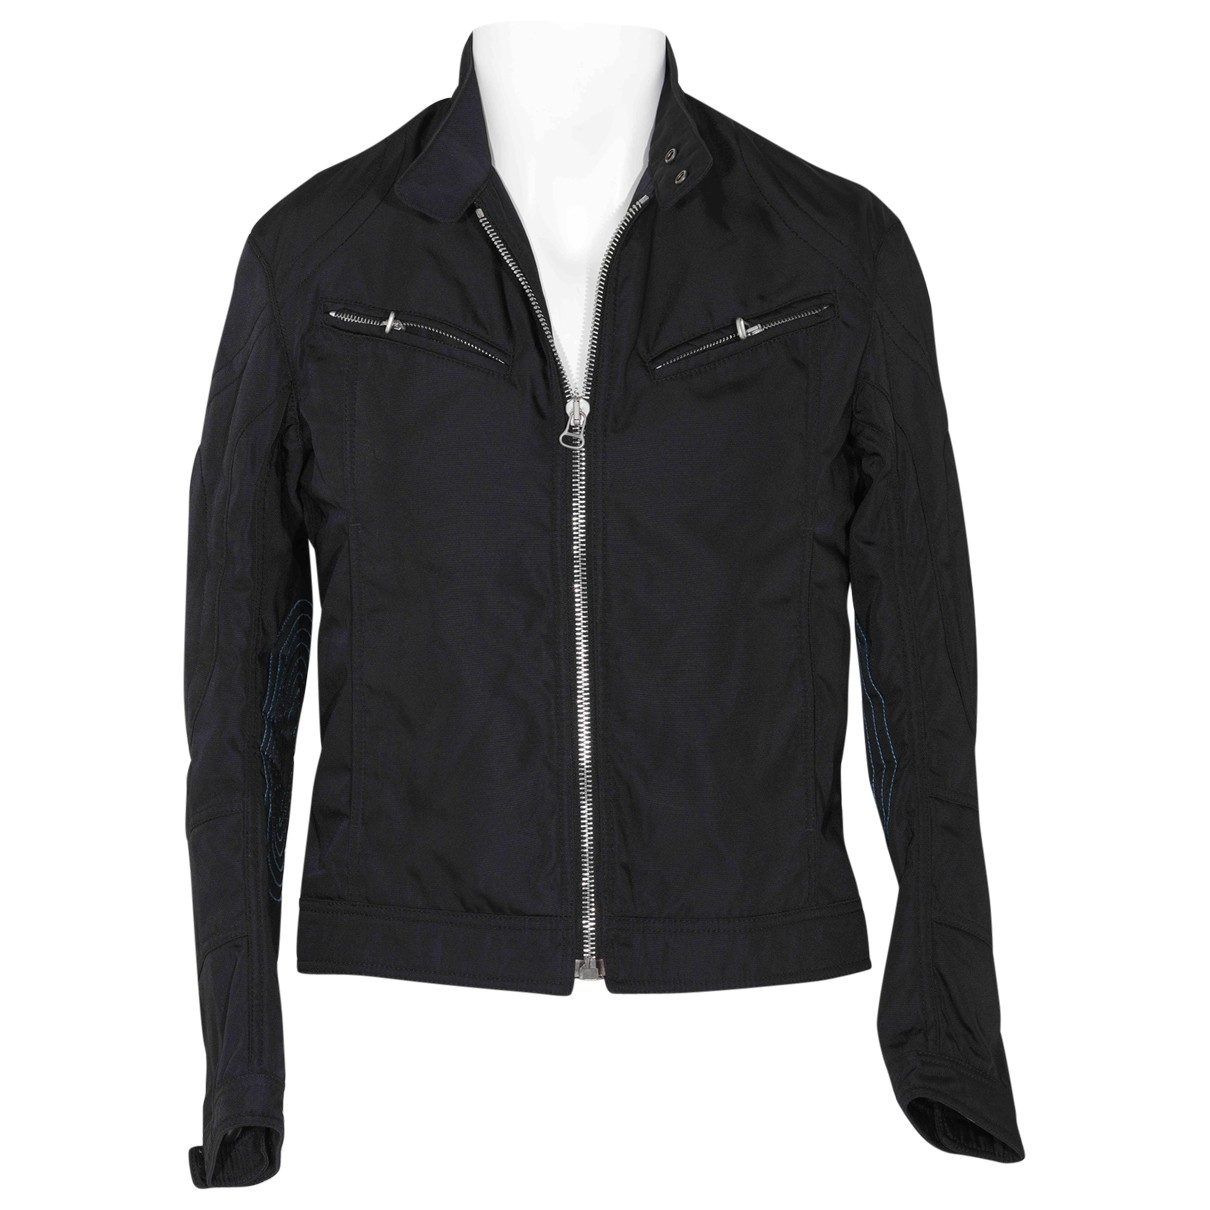 Hugo Boss \N Black jacket  for Men S International